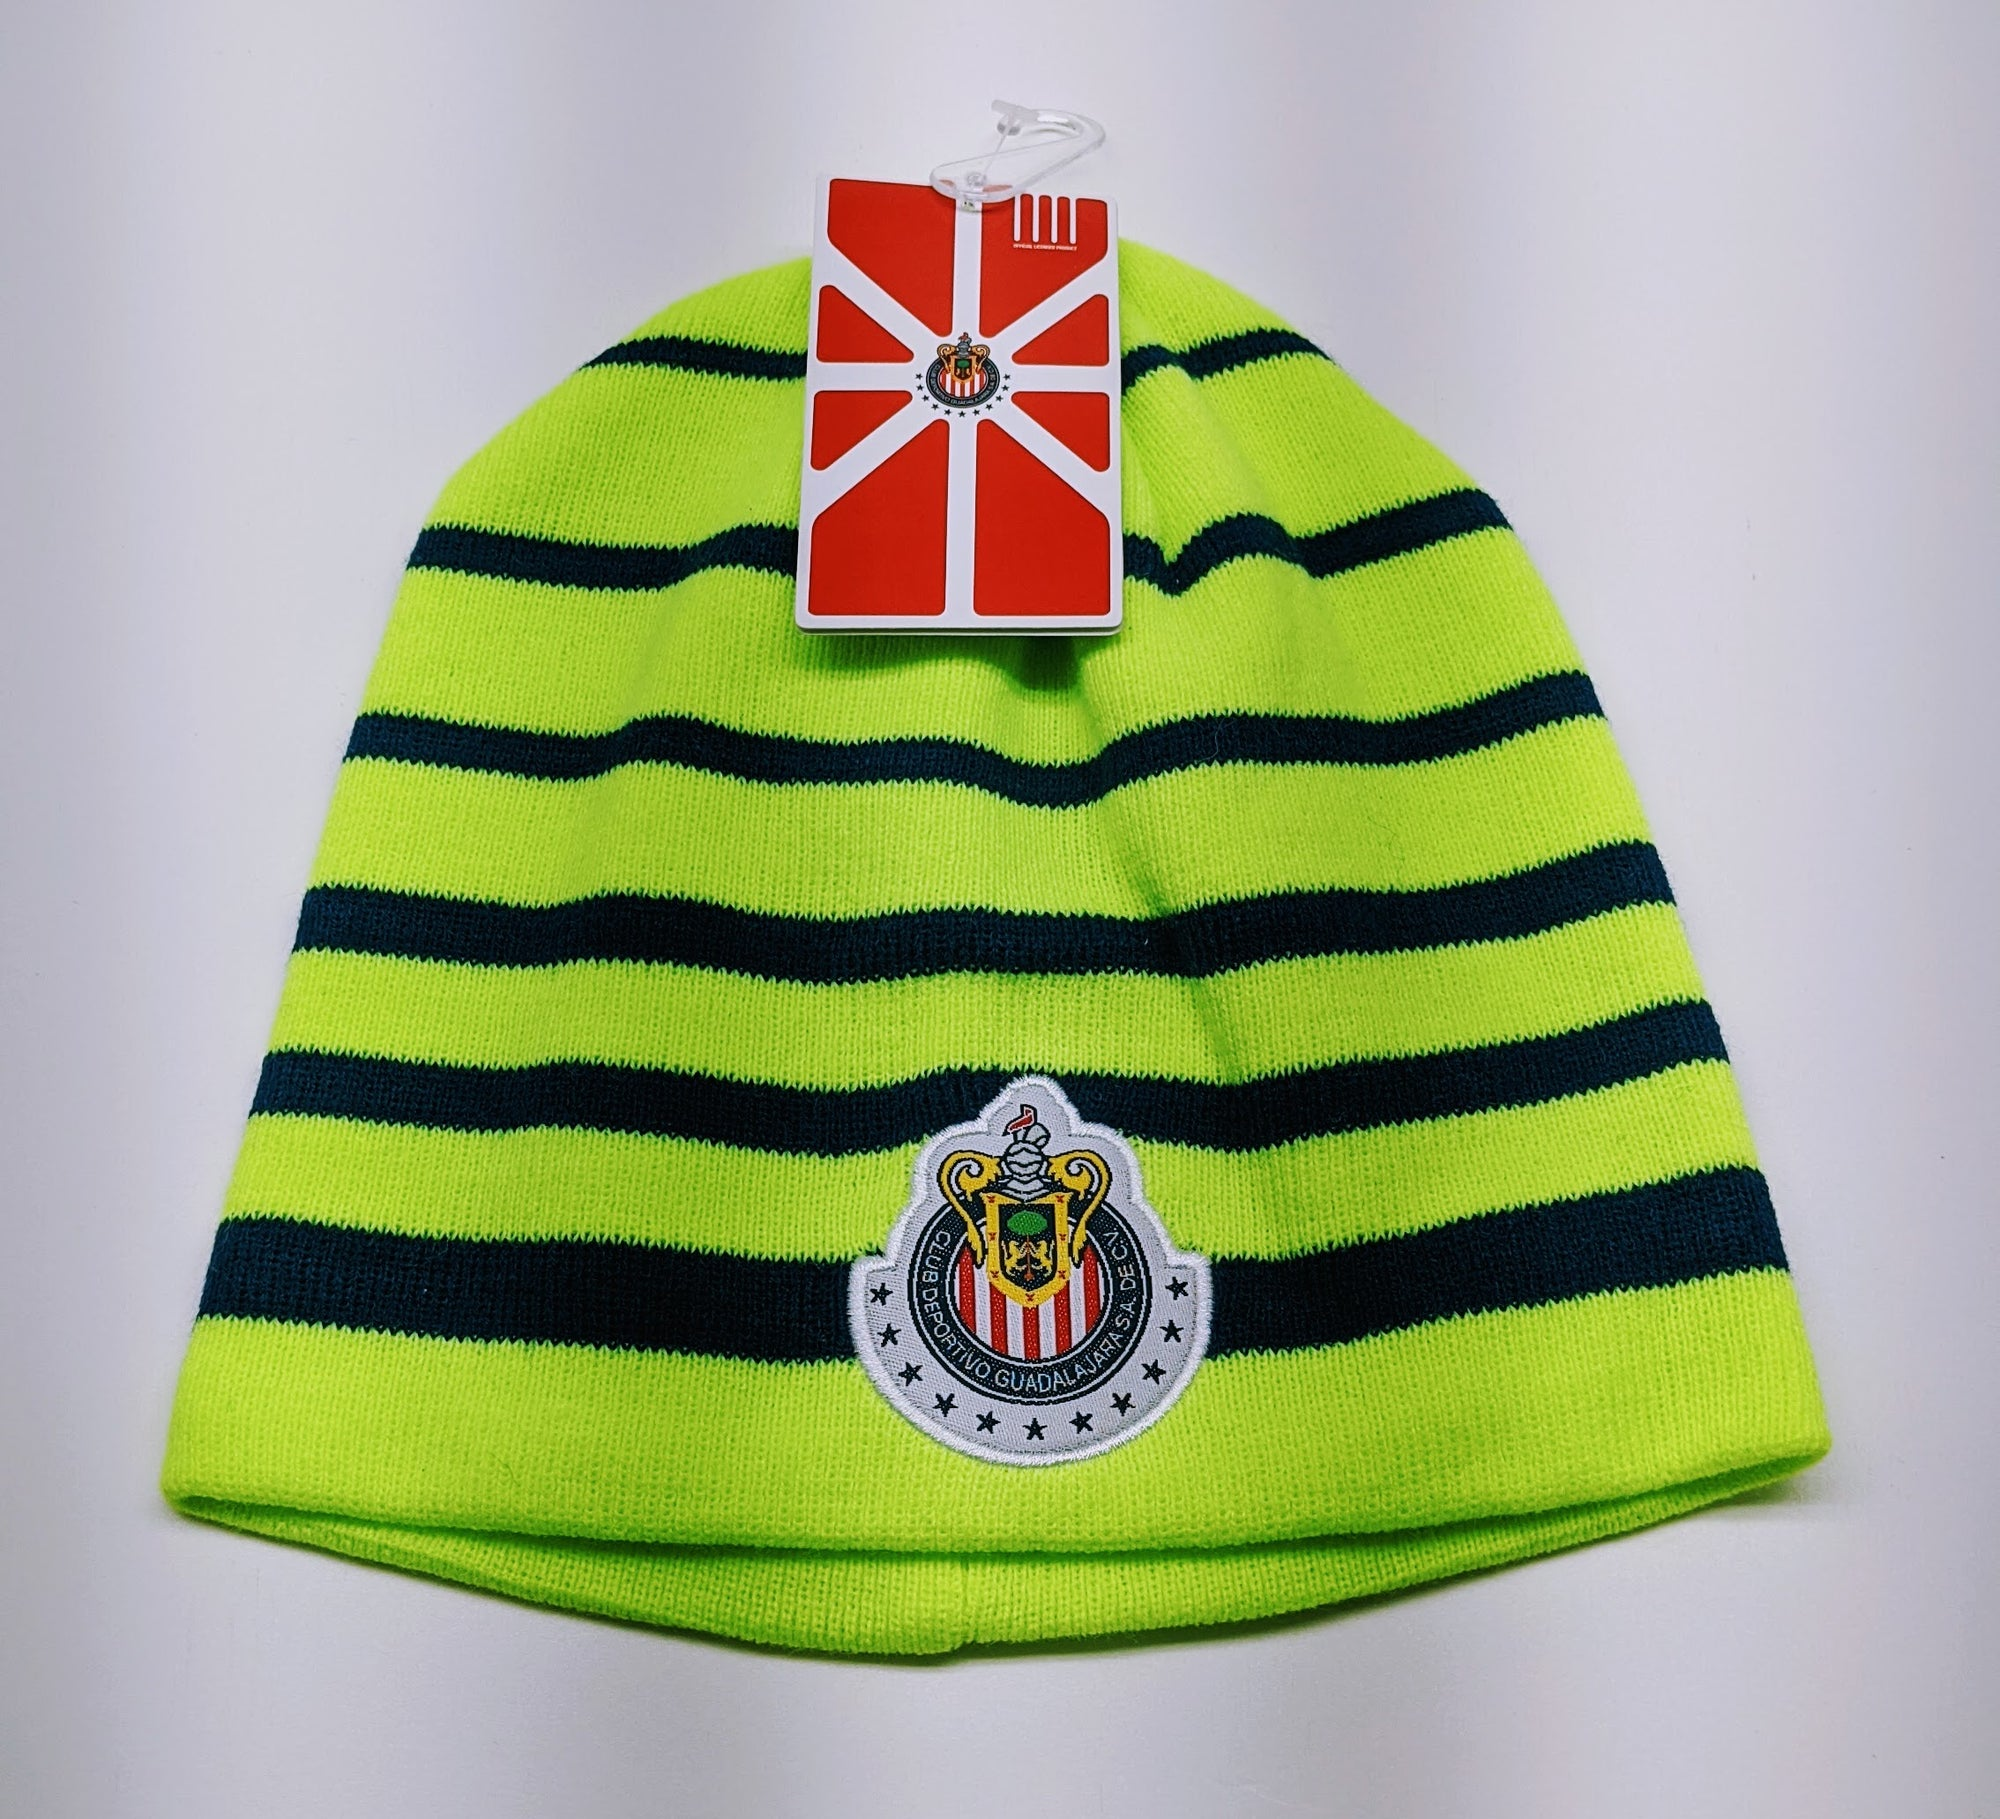 Club Chivas Adult Beanie